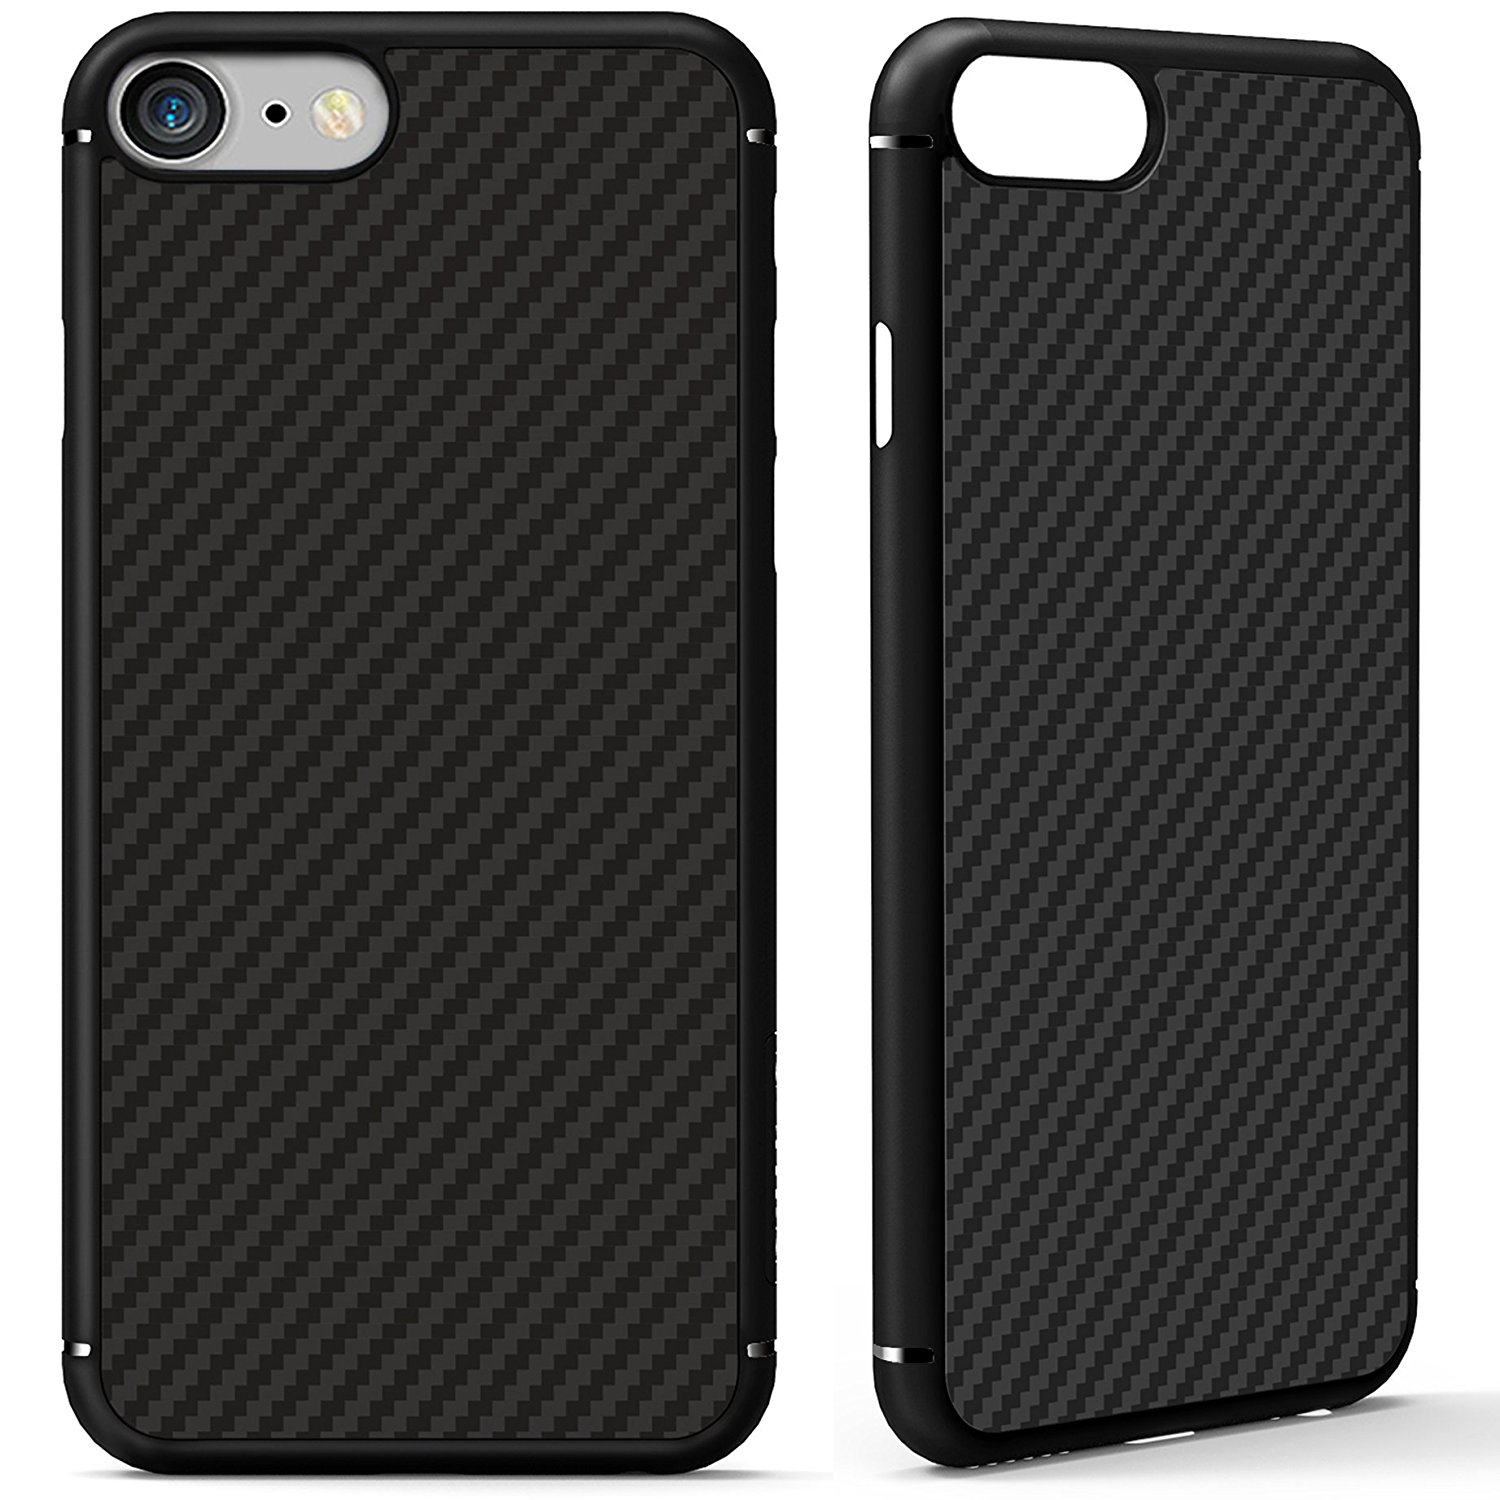 iPhone 7 Case, Nillkin [Black] Super Slim Smooth [Carbon Fiber] Armor Case Cover for iPhone 7 4.7-inch, Anti Fingerprints Built-in Metal Plate, Compatible with Magnetic Car Mounts